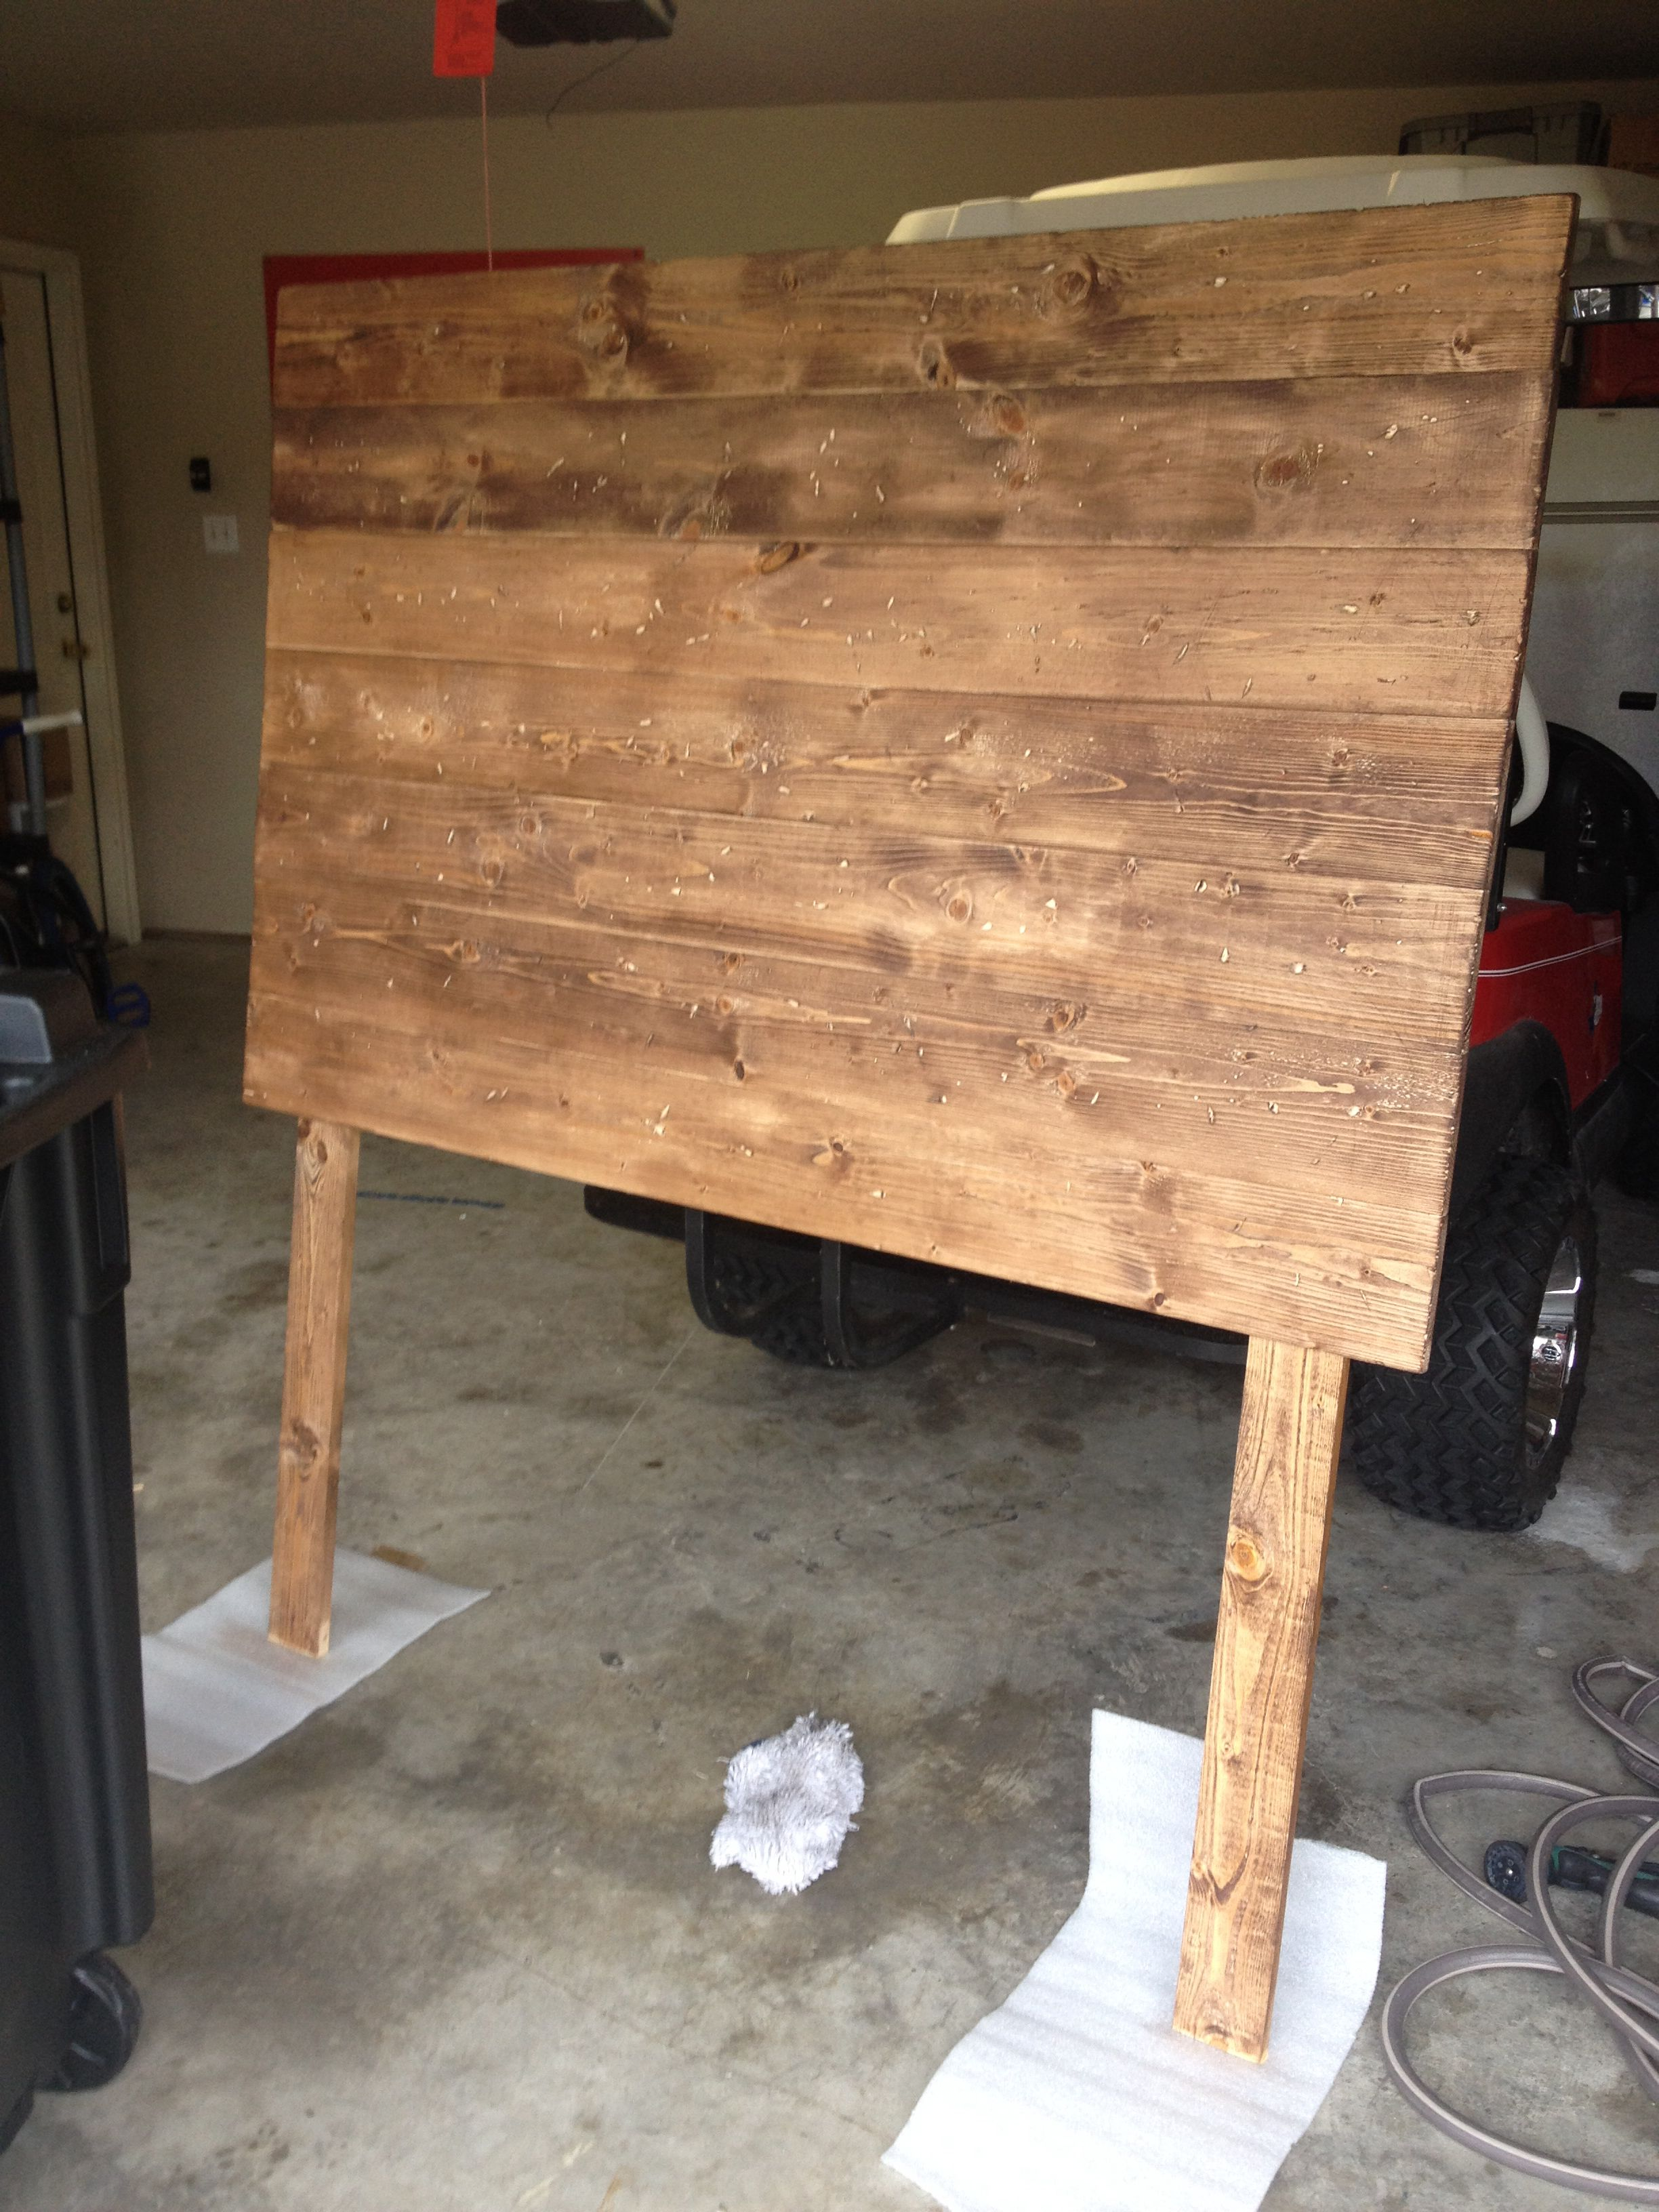 Diy Full Size Headboard 7 1x6x6 Boards From Lowe S 2 1x4x6 Minwax Stain In Special Walnut Across Into The